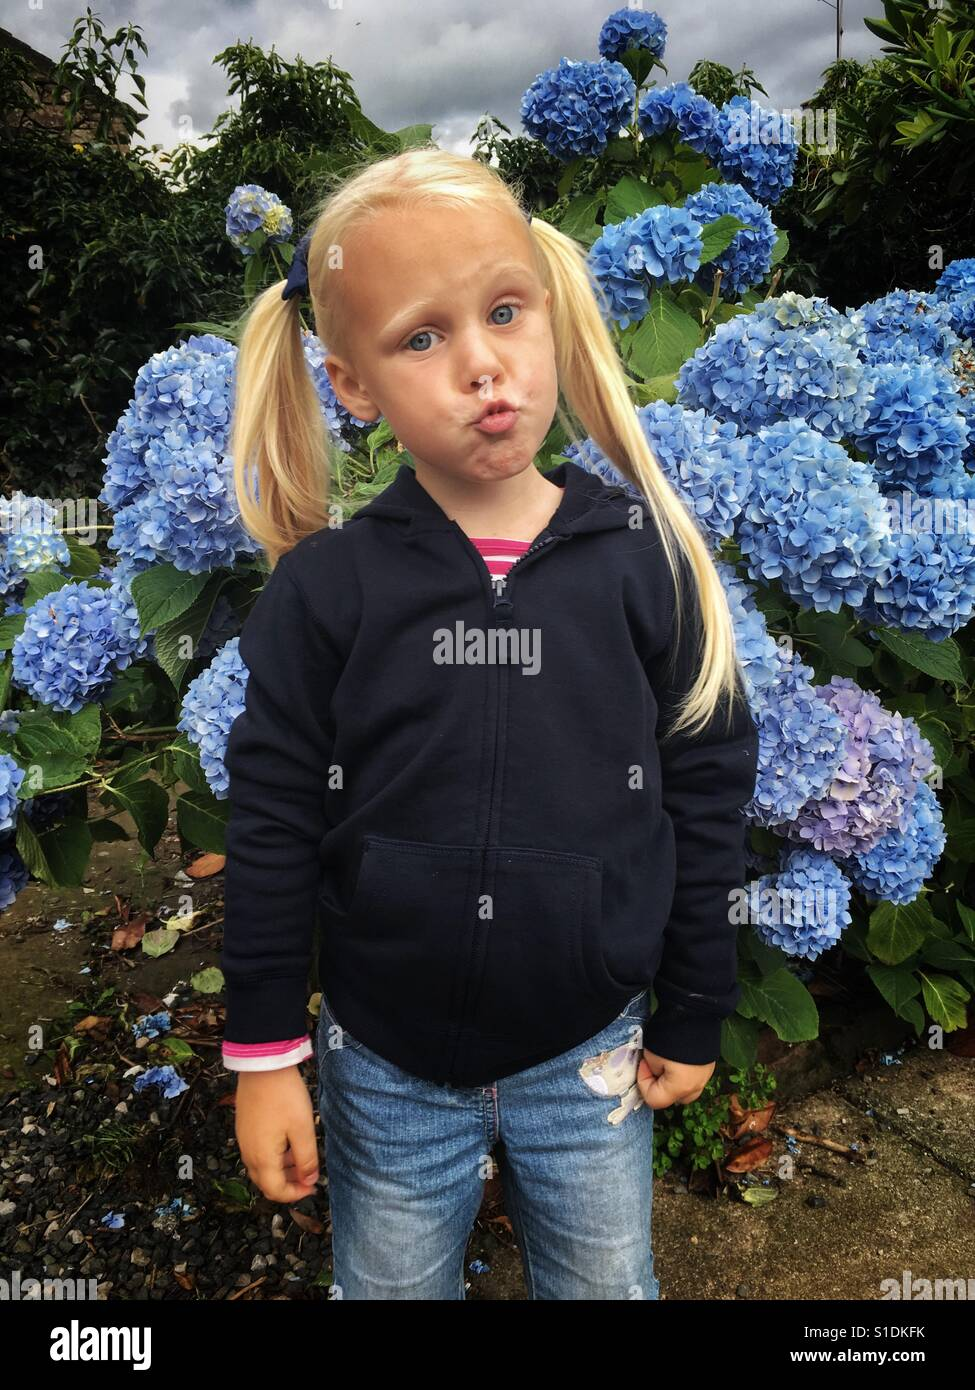 Blonde four year old girl